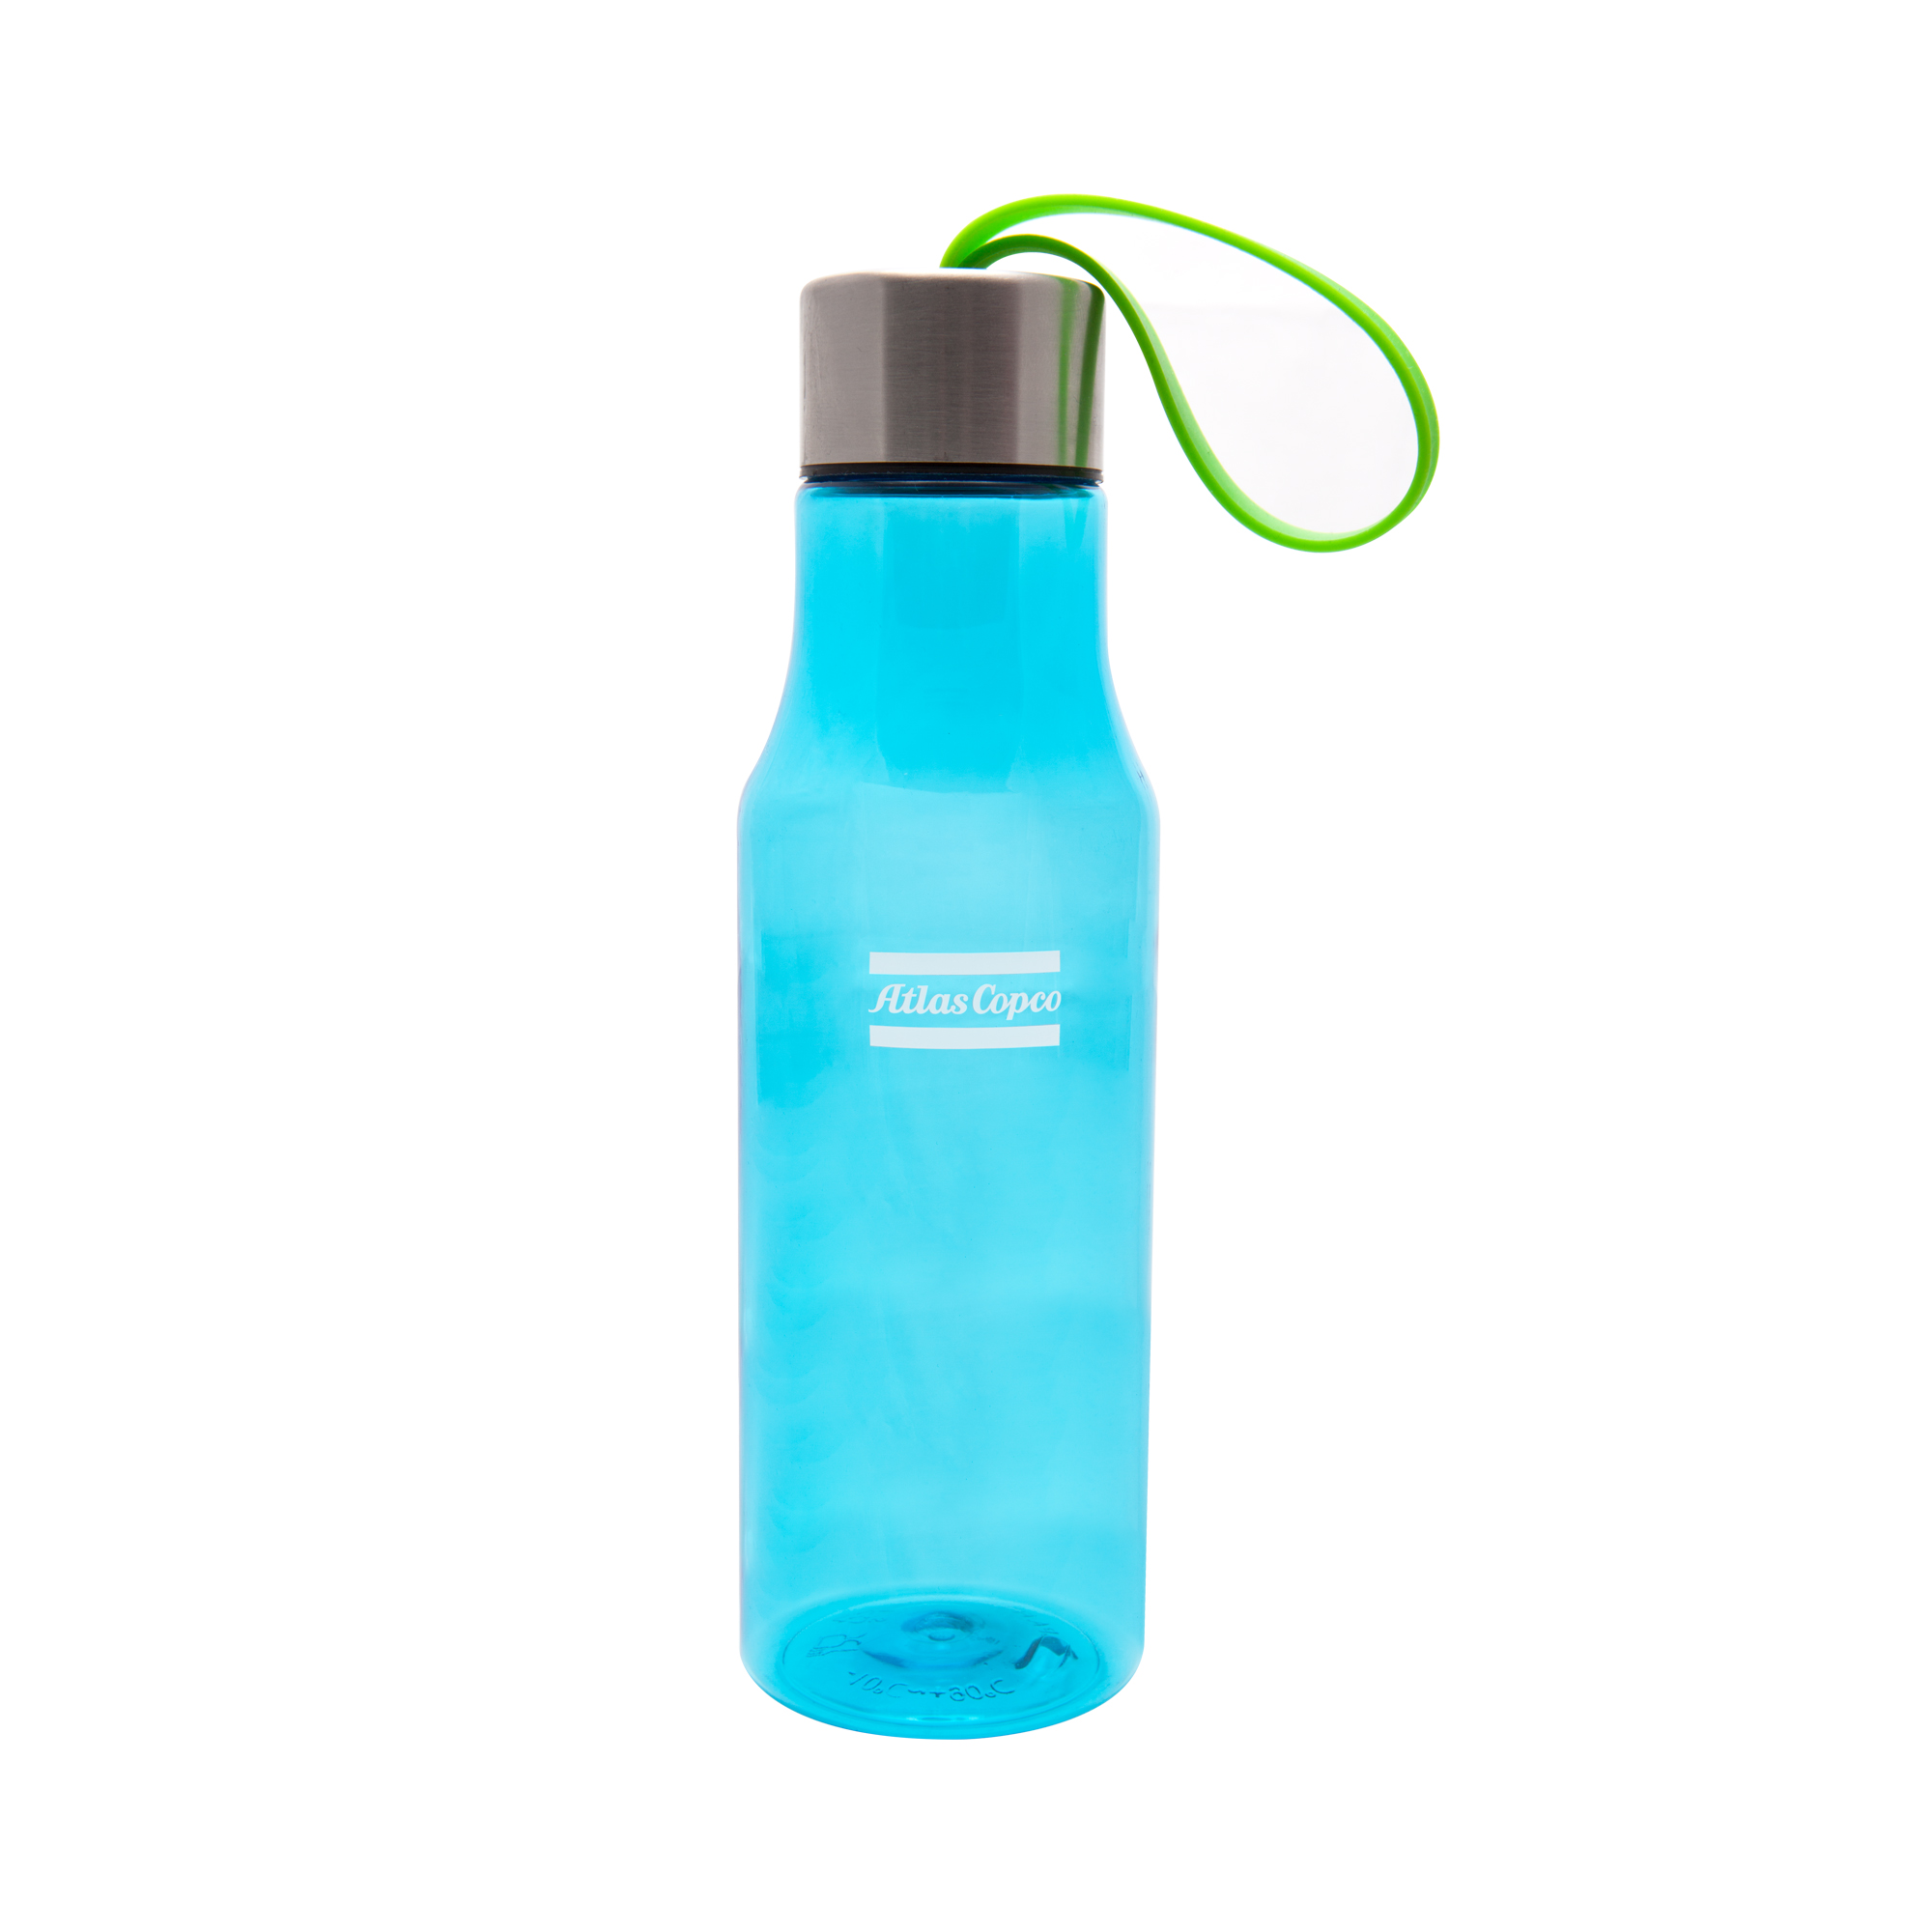 Fill this Atlas Copco designed bottle with fresh water from the office water cooler or from the tap. The Water Bottle Poseidon is made from Tritan BPA free plastic and the lid is stainless steel. The green rubber chord makes this everyday water bottle convenient to carry and gives it a touch of style. Delivered in an Atlas Copco box.